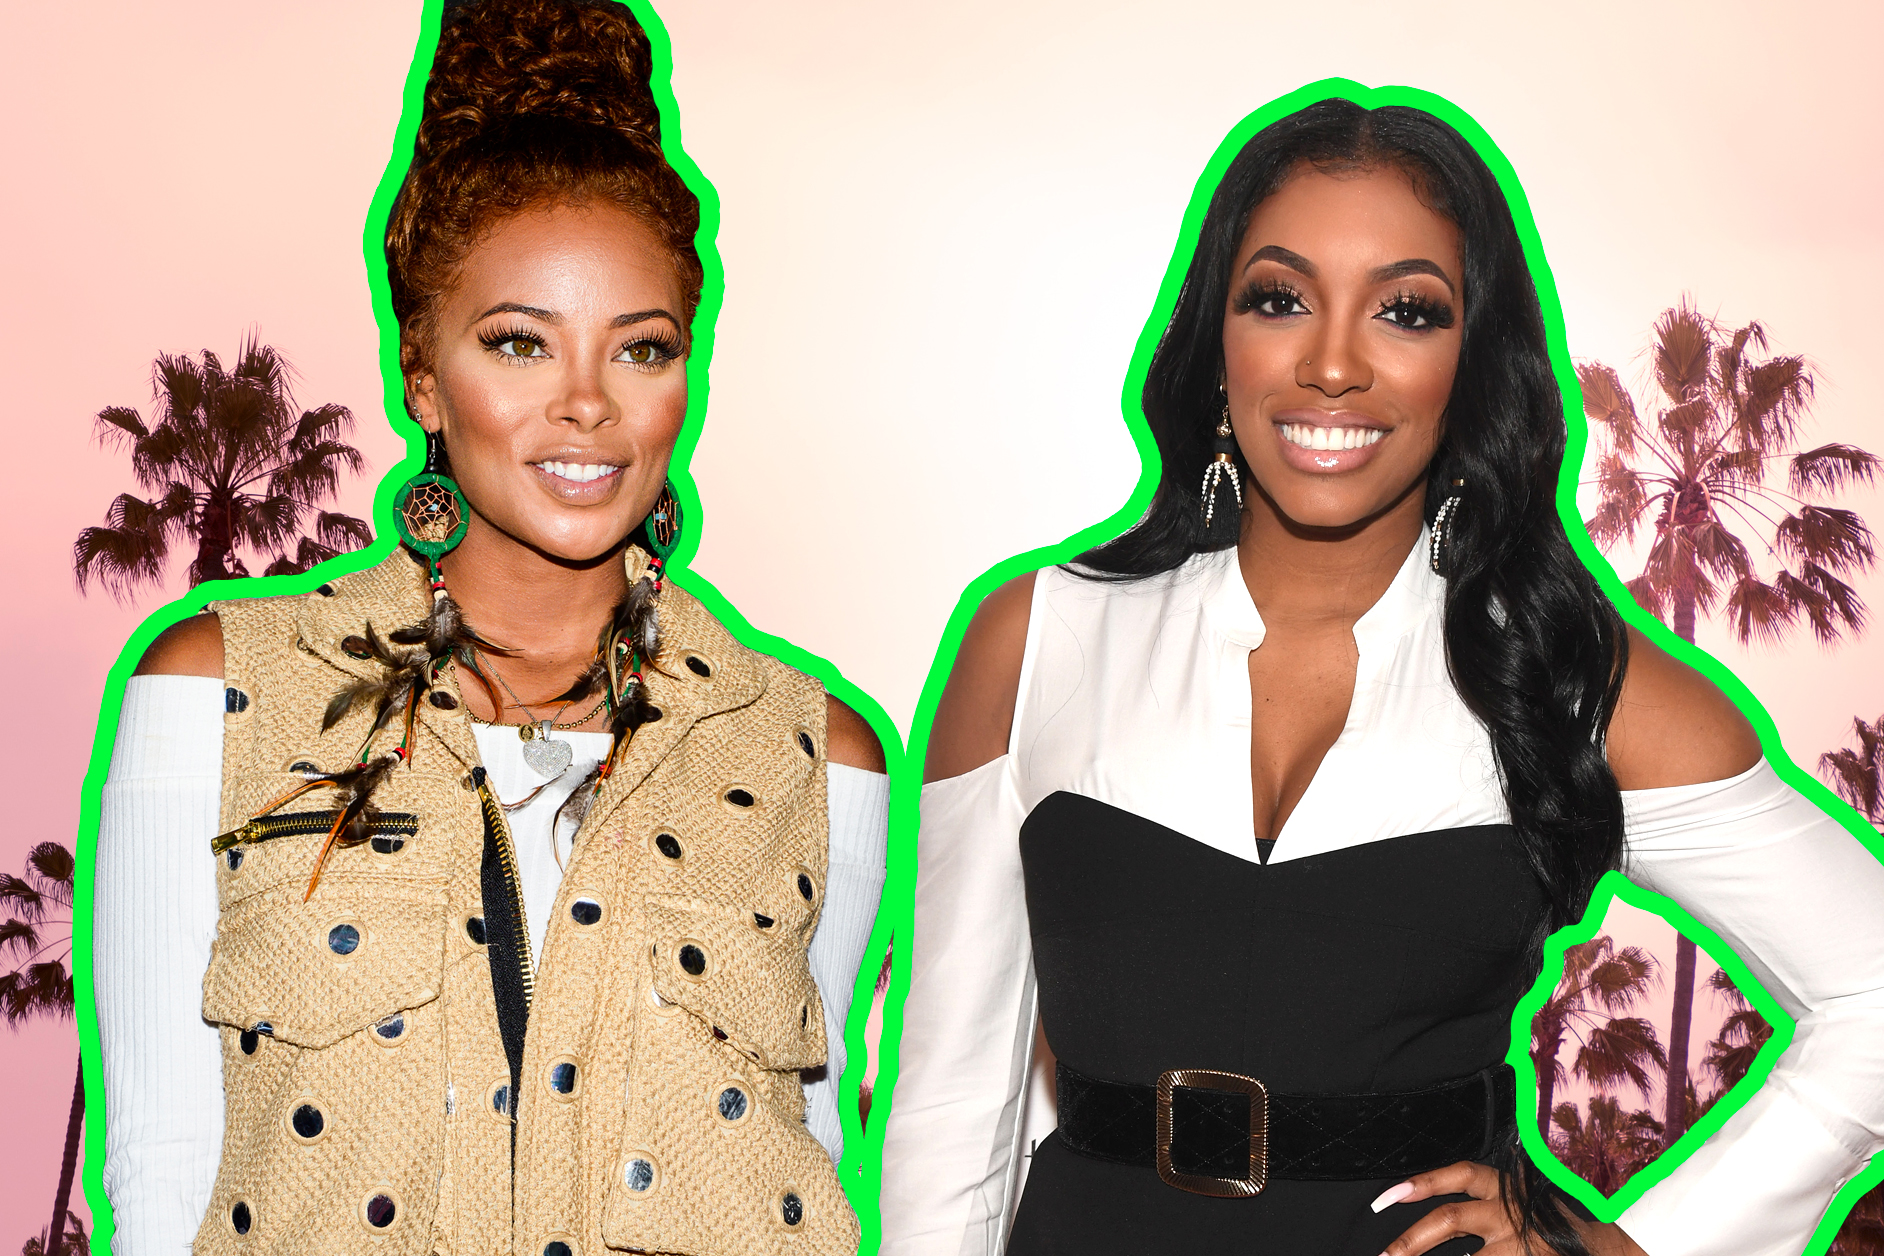 porsha-williams-promotes-eva-marcilles-business-and-fans-love-to-see-the-ladies-supporting-one-another